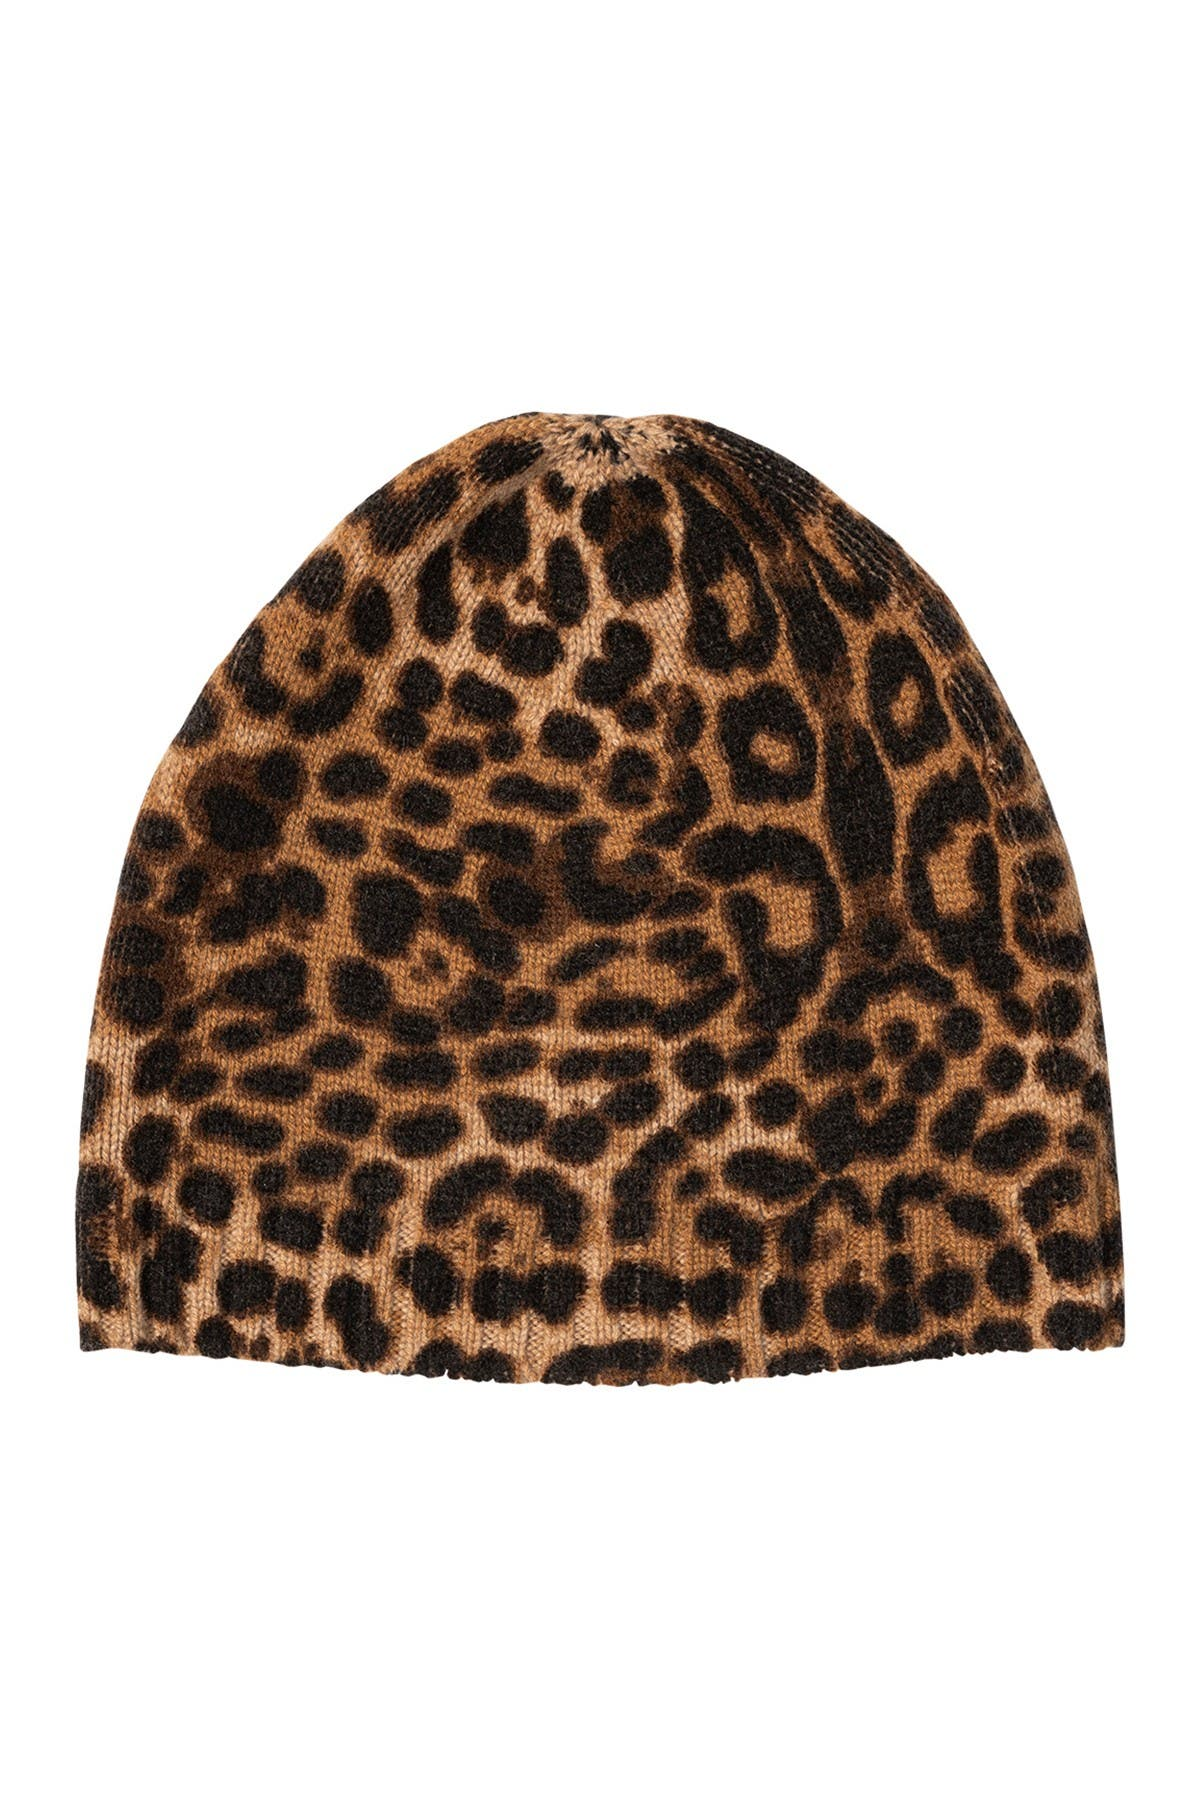 Image of AMICALE Cashmere Animal Print Beanie